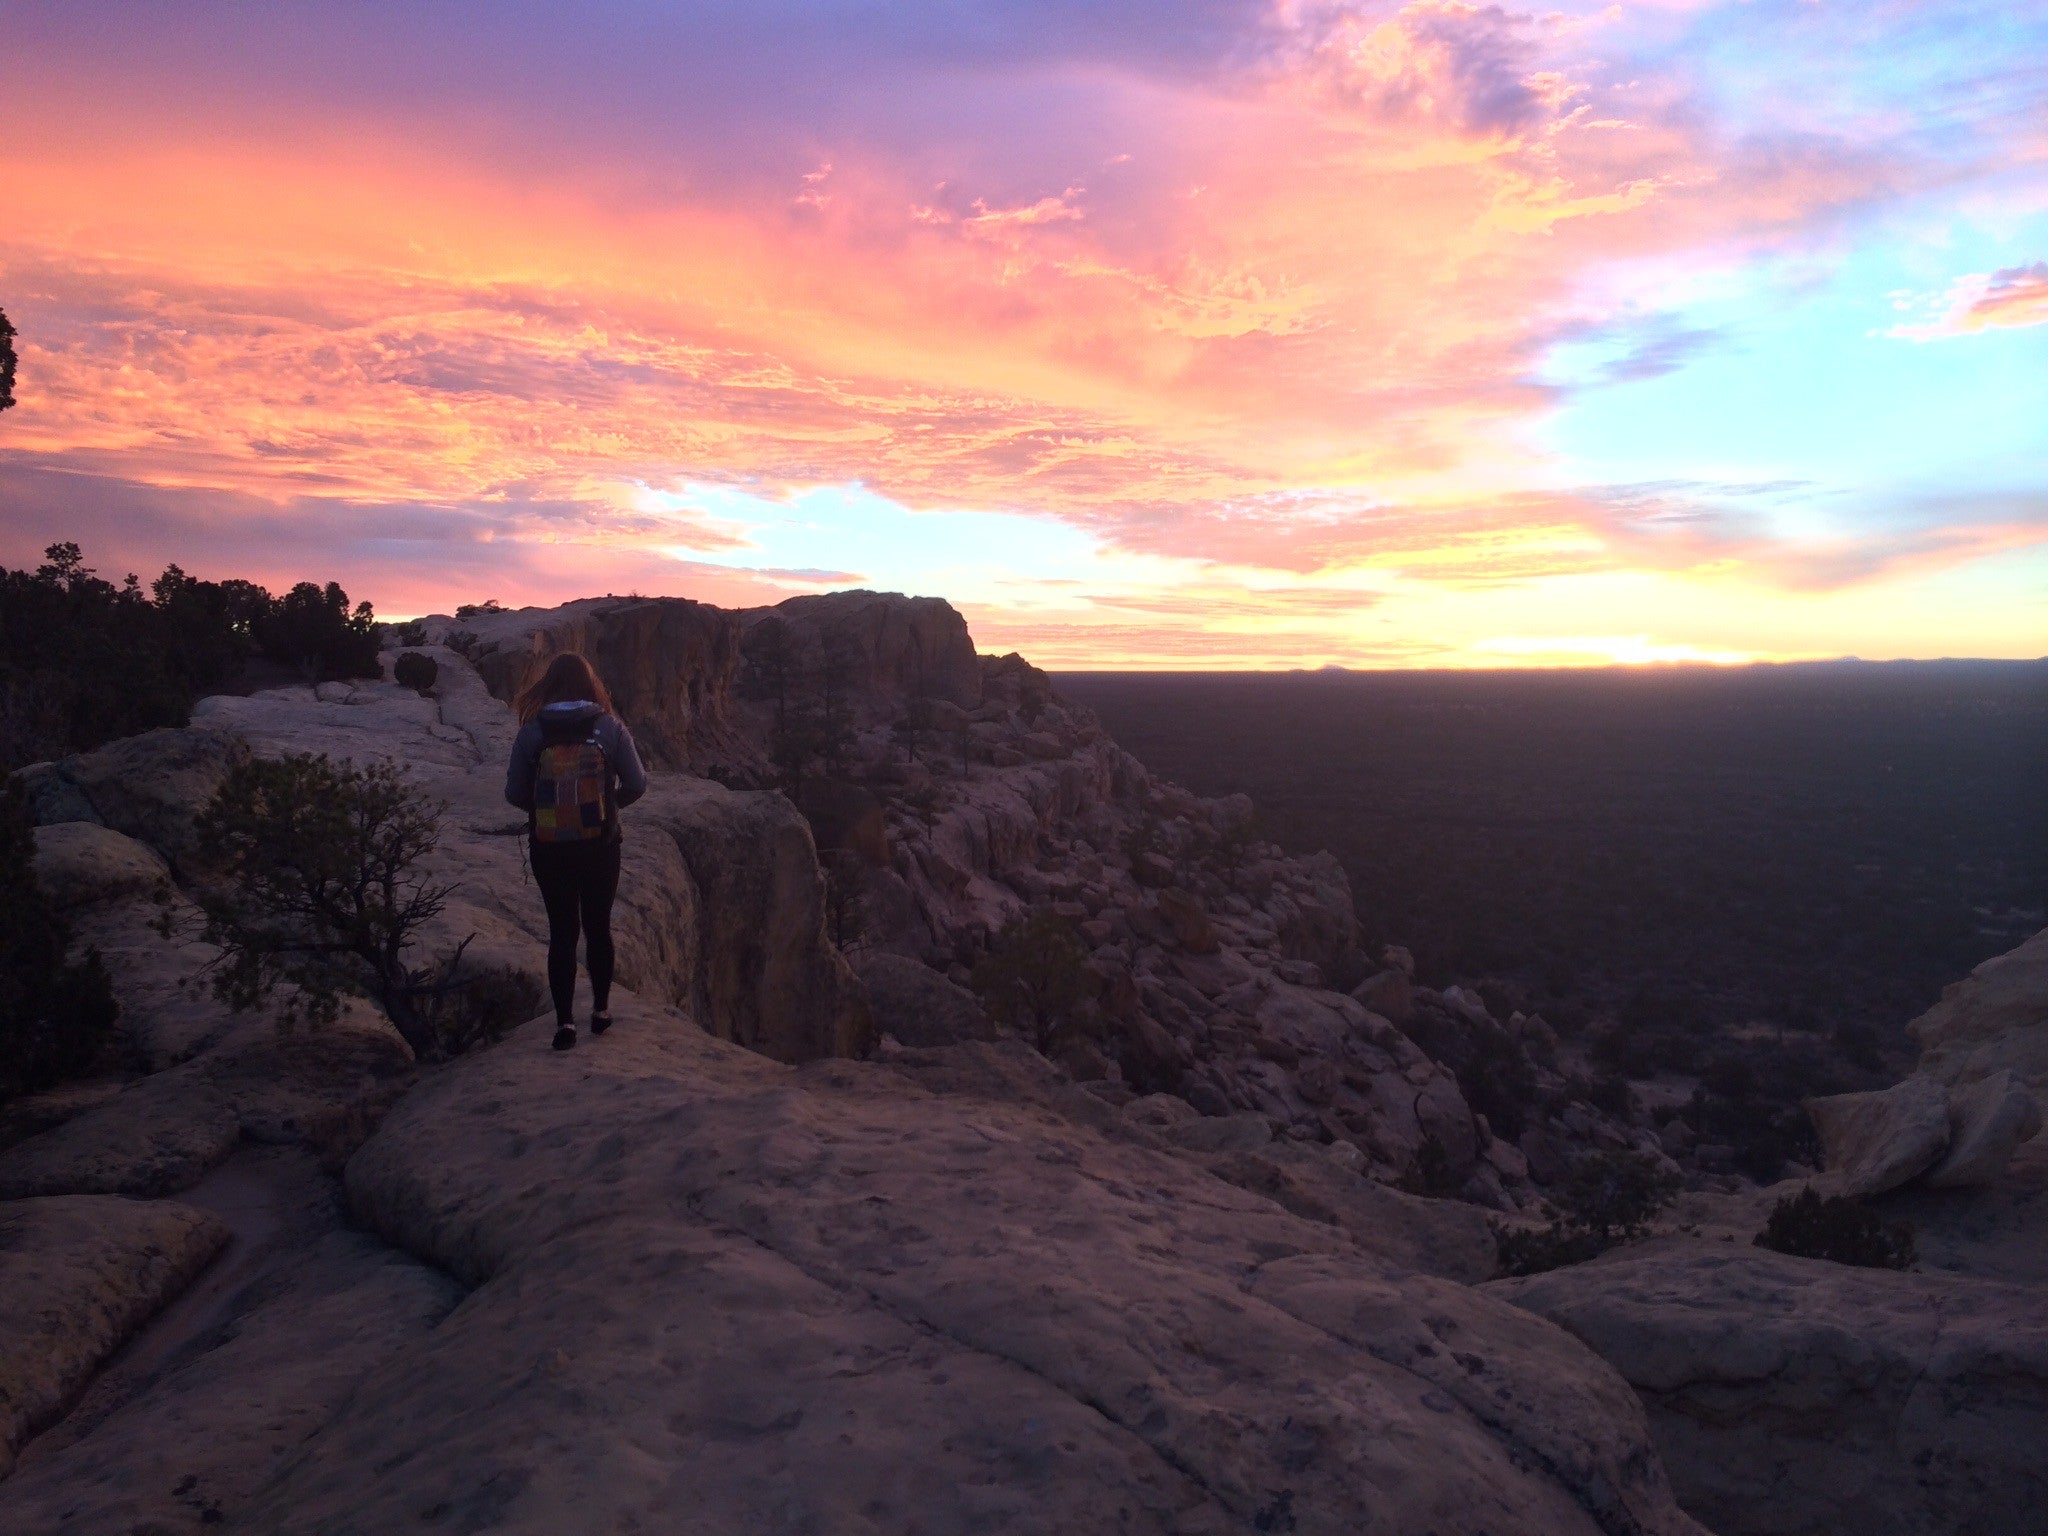 Sunset at the limestone cliffs at El Malpais National Monument